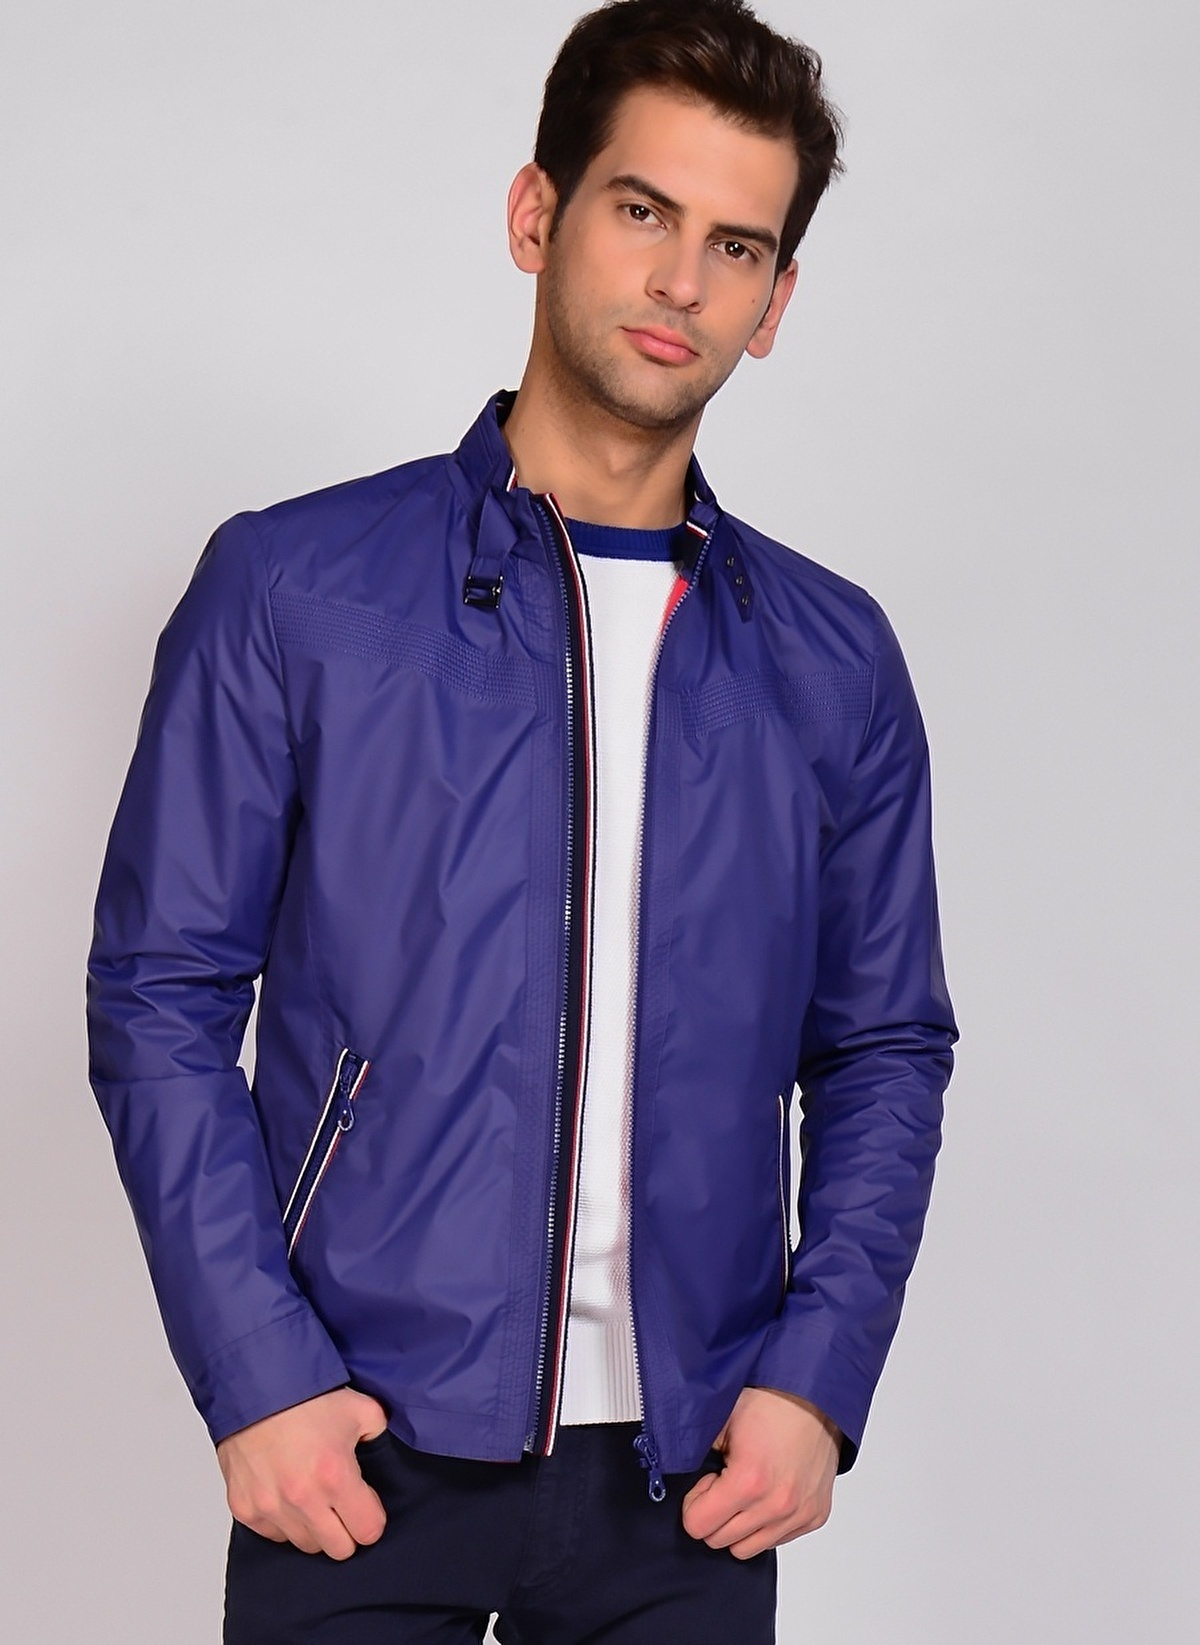 North Of Navy Mont 61snr Taylor E Mont – 129.99 TL